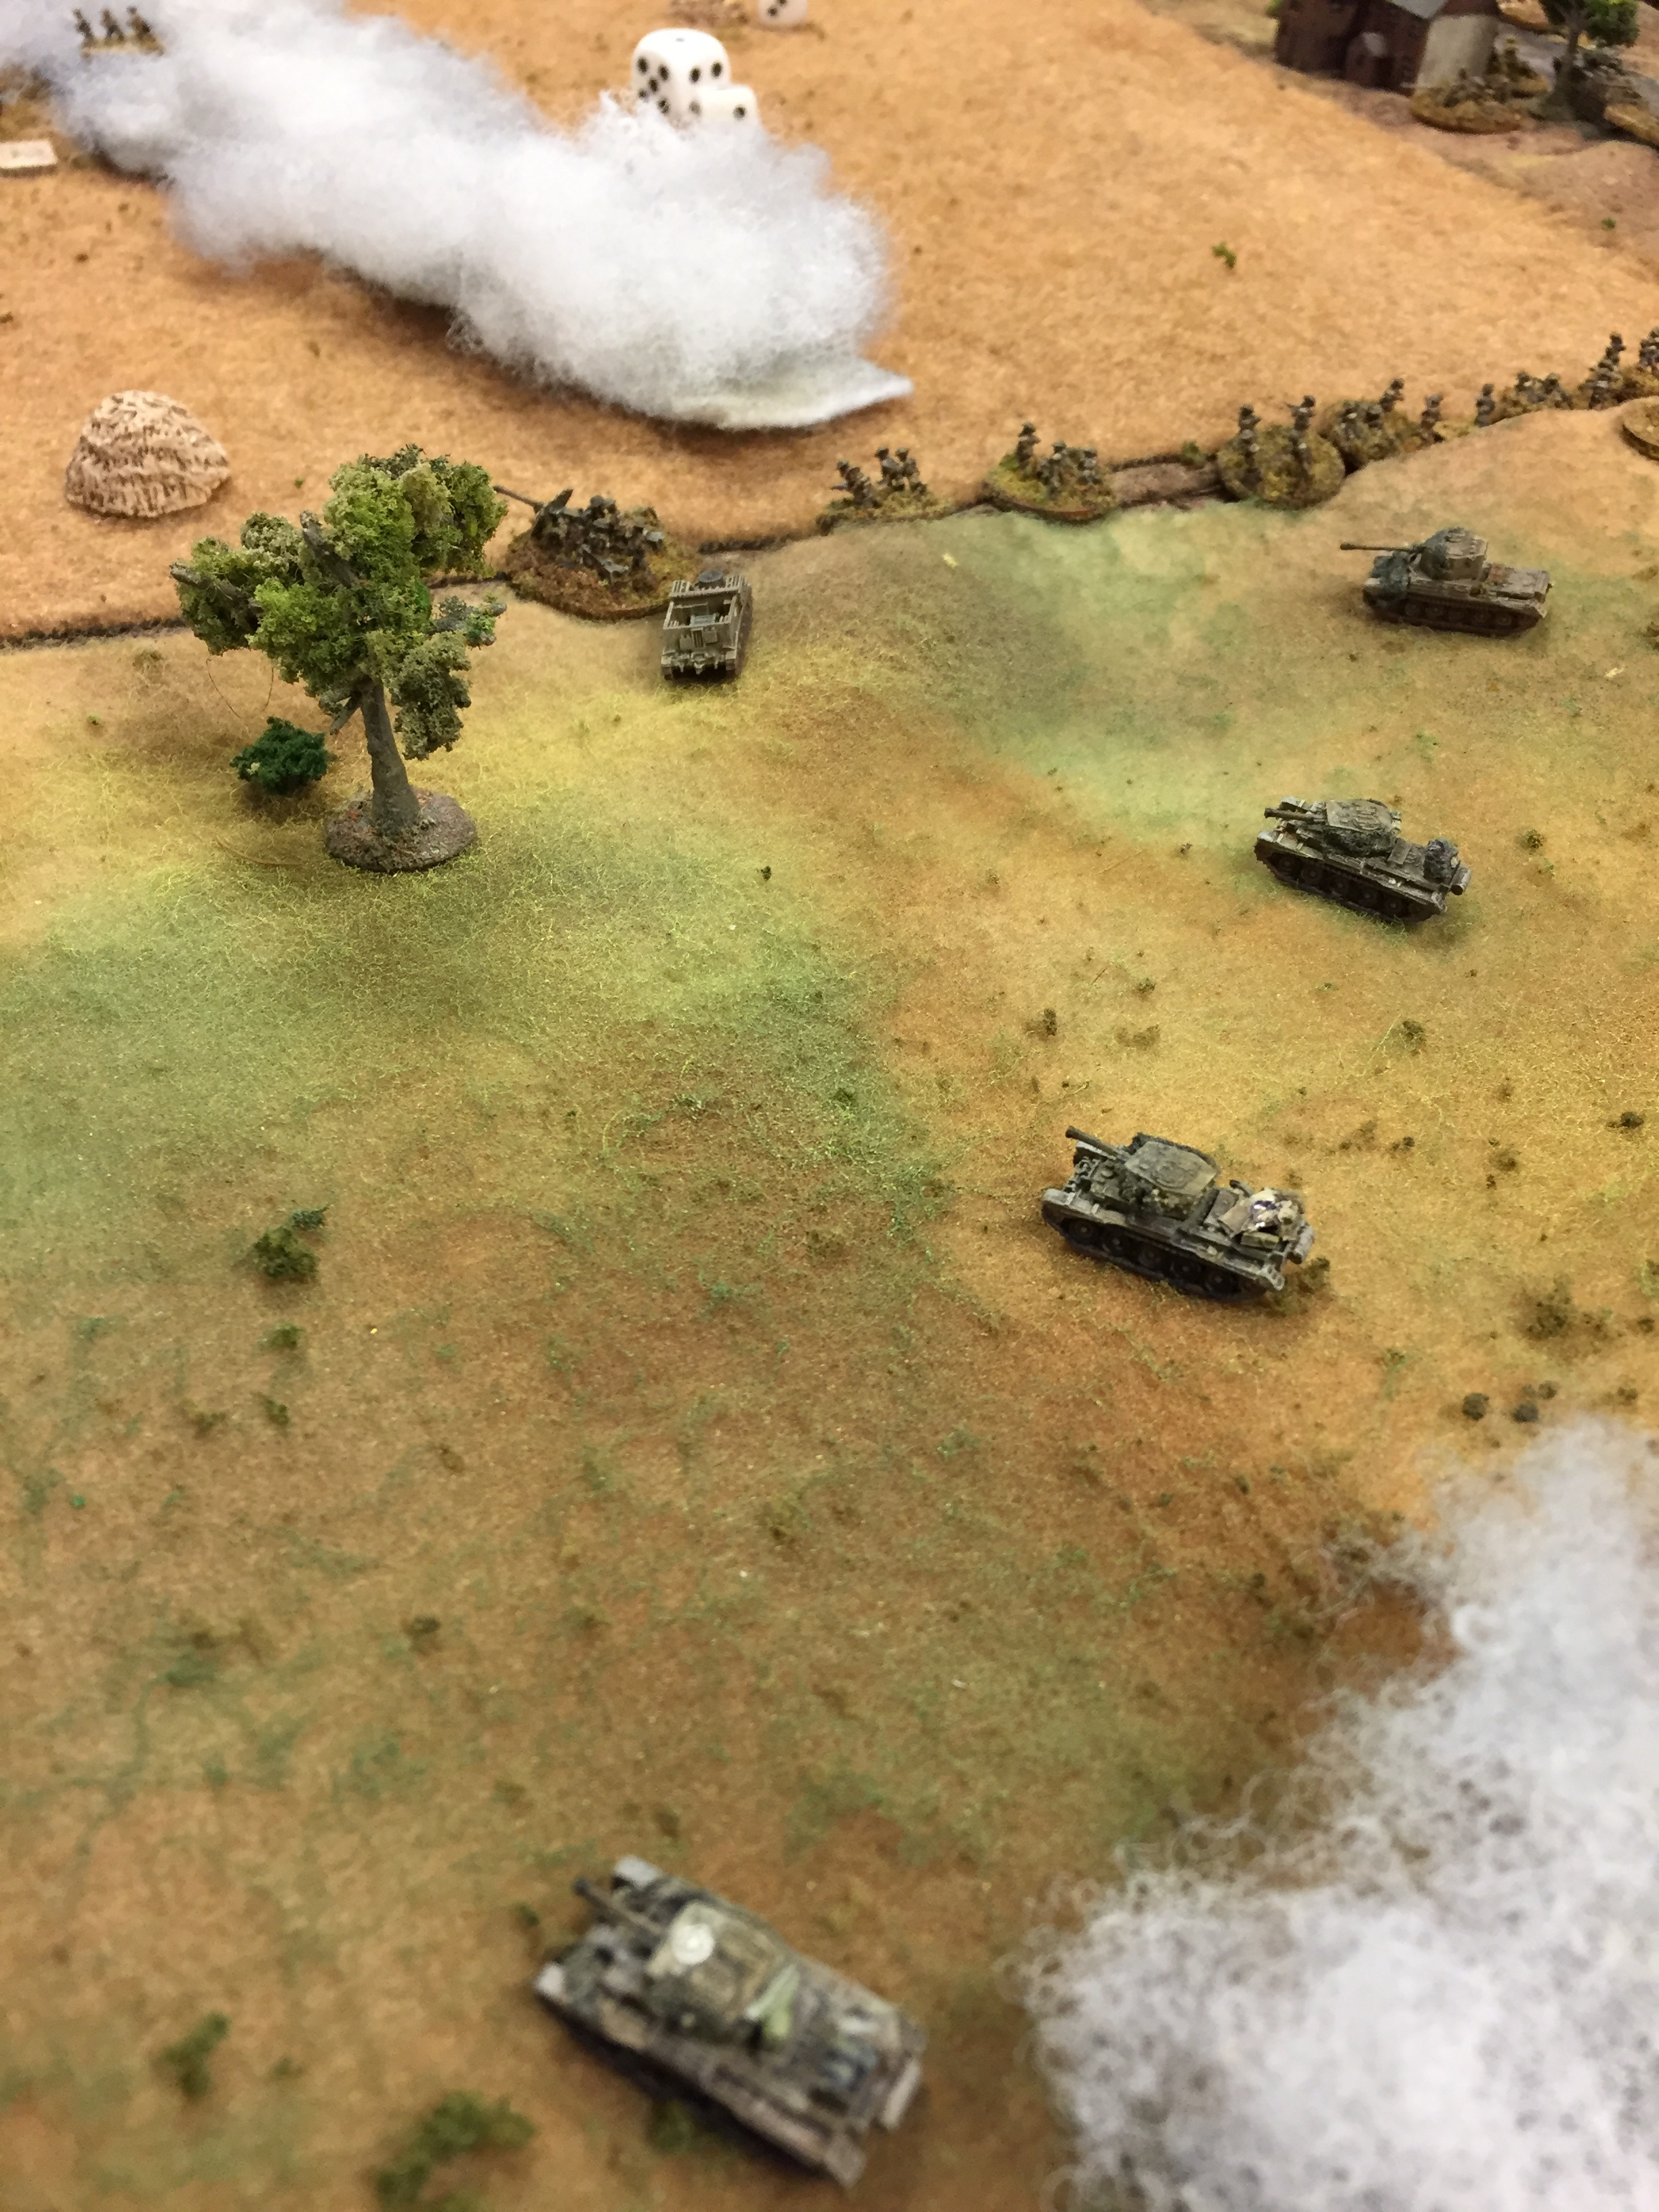 The Cavalry (The Hussars At Least) Arrive